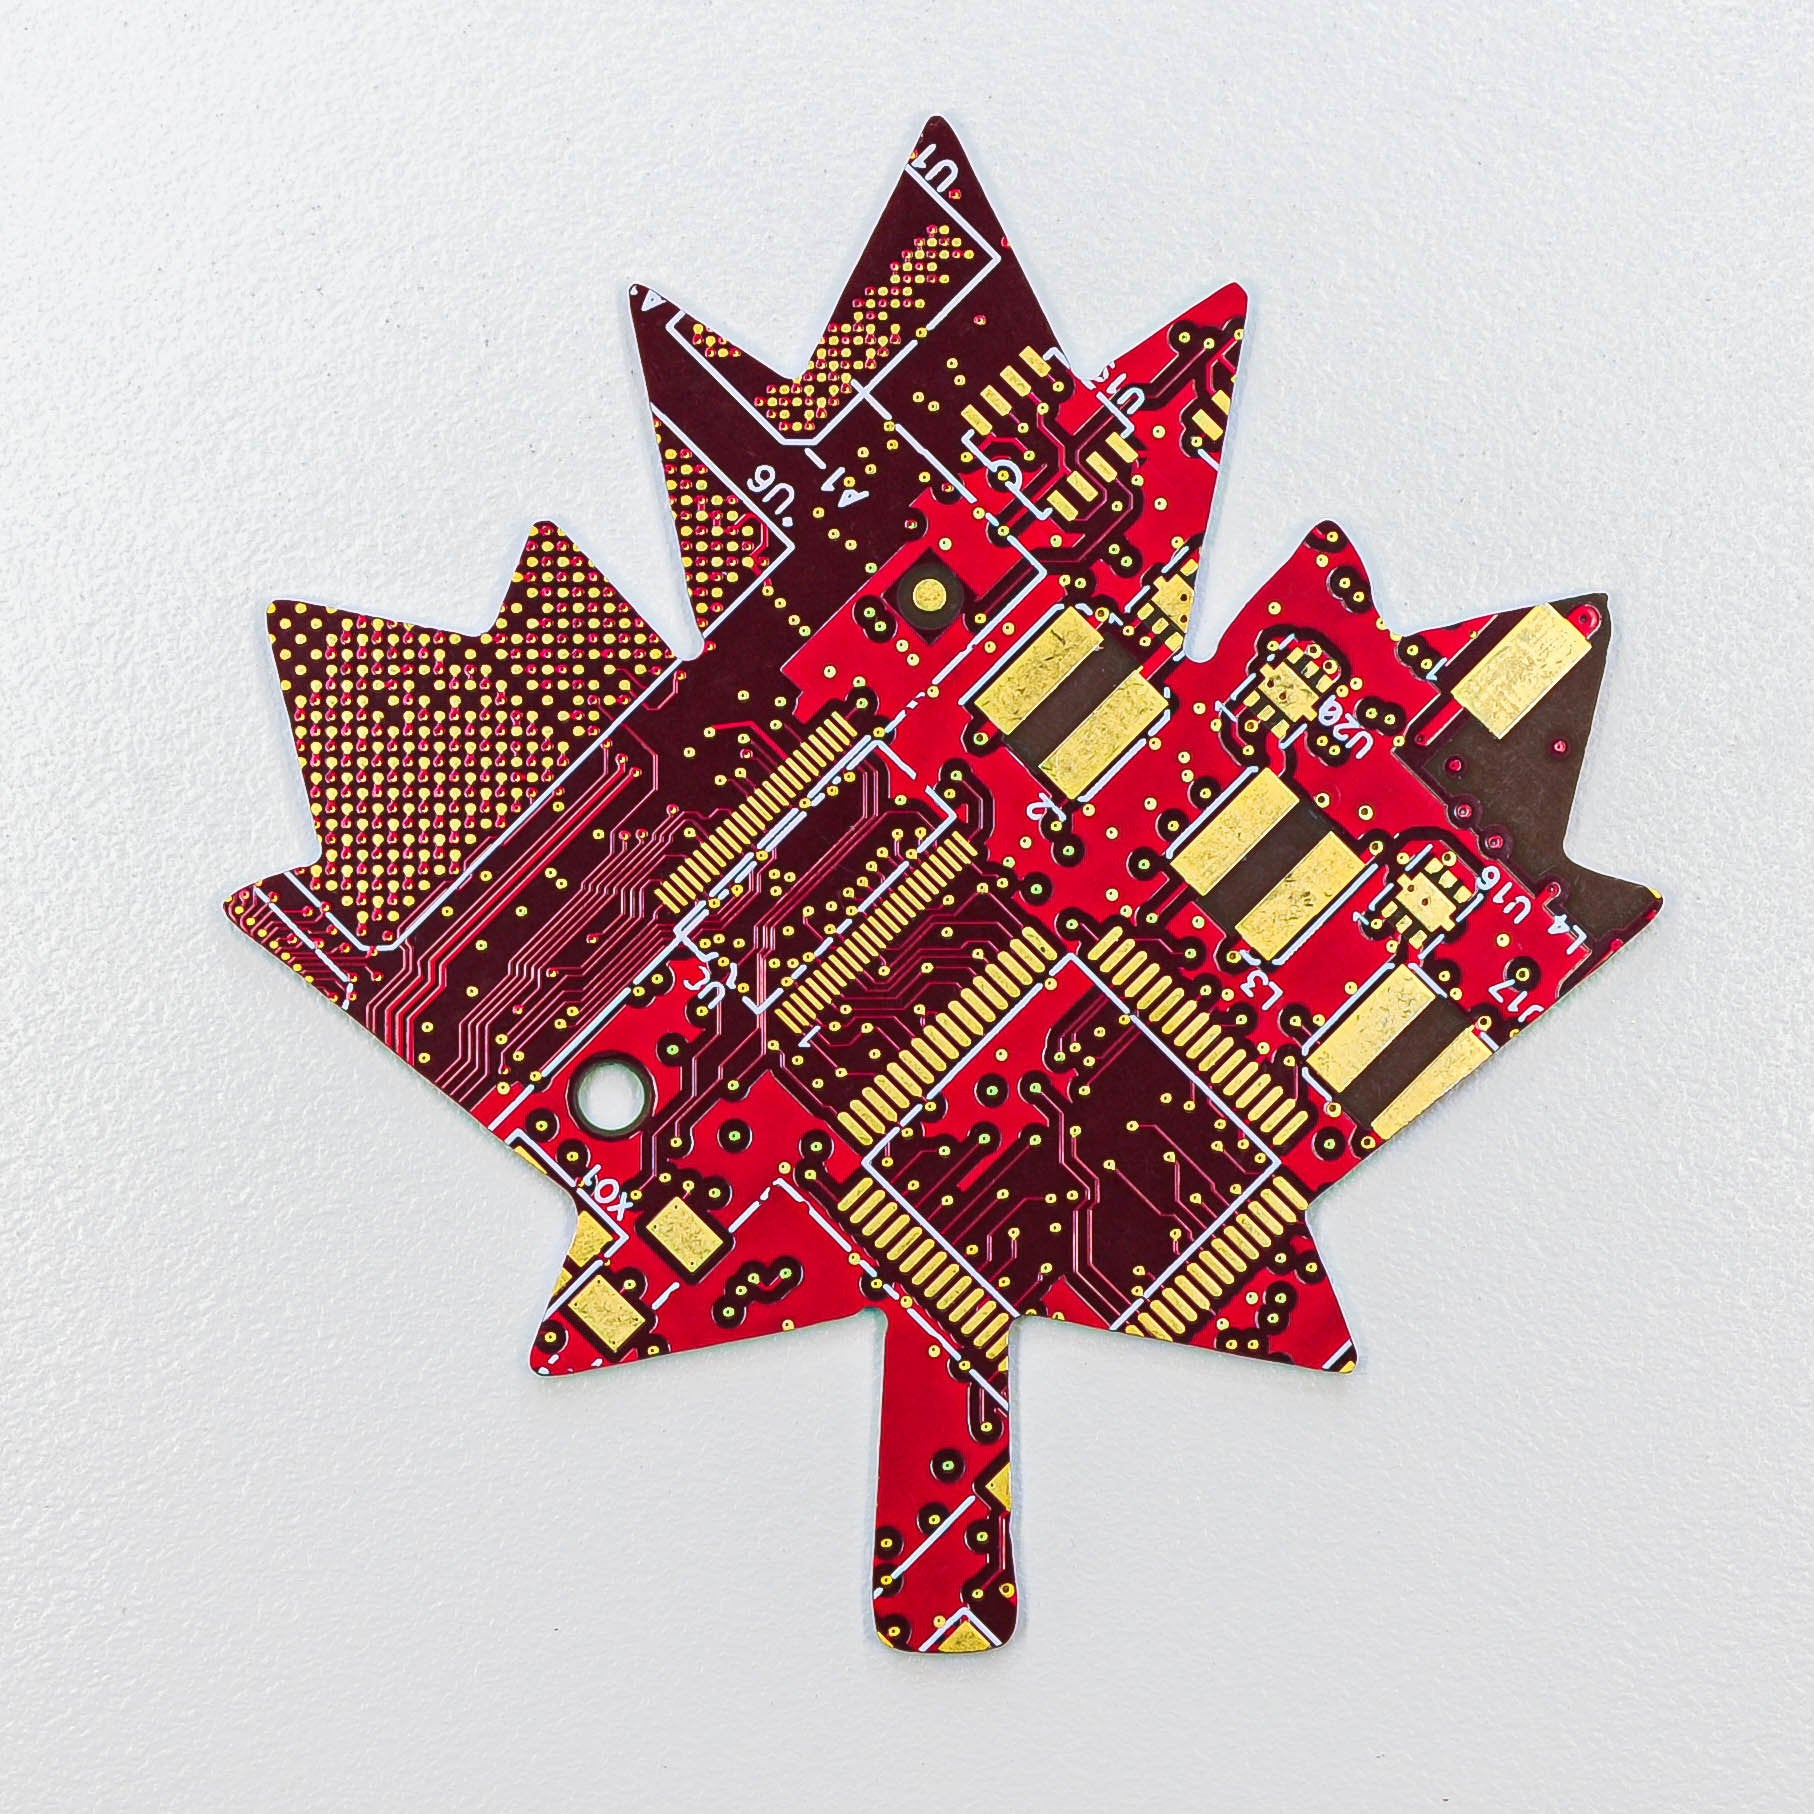 Circuit Board Maple Leaf - TechWears Ltd